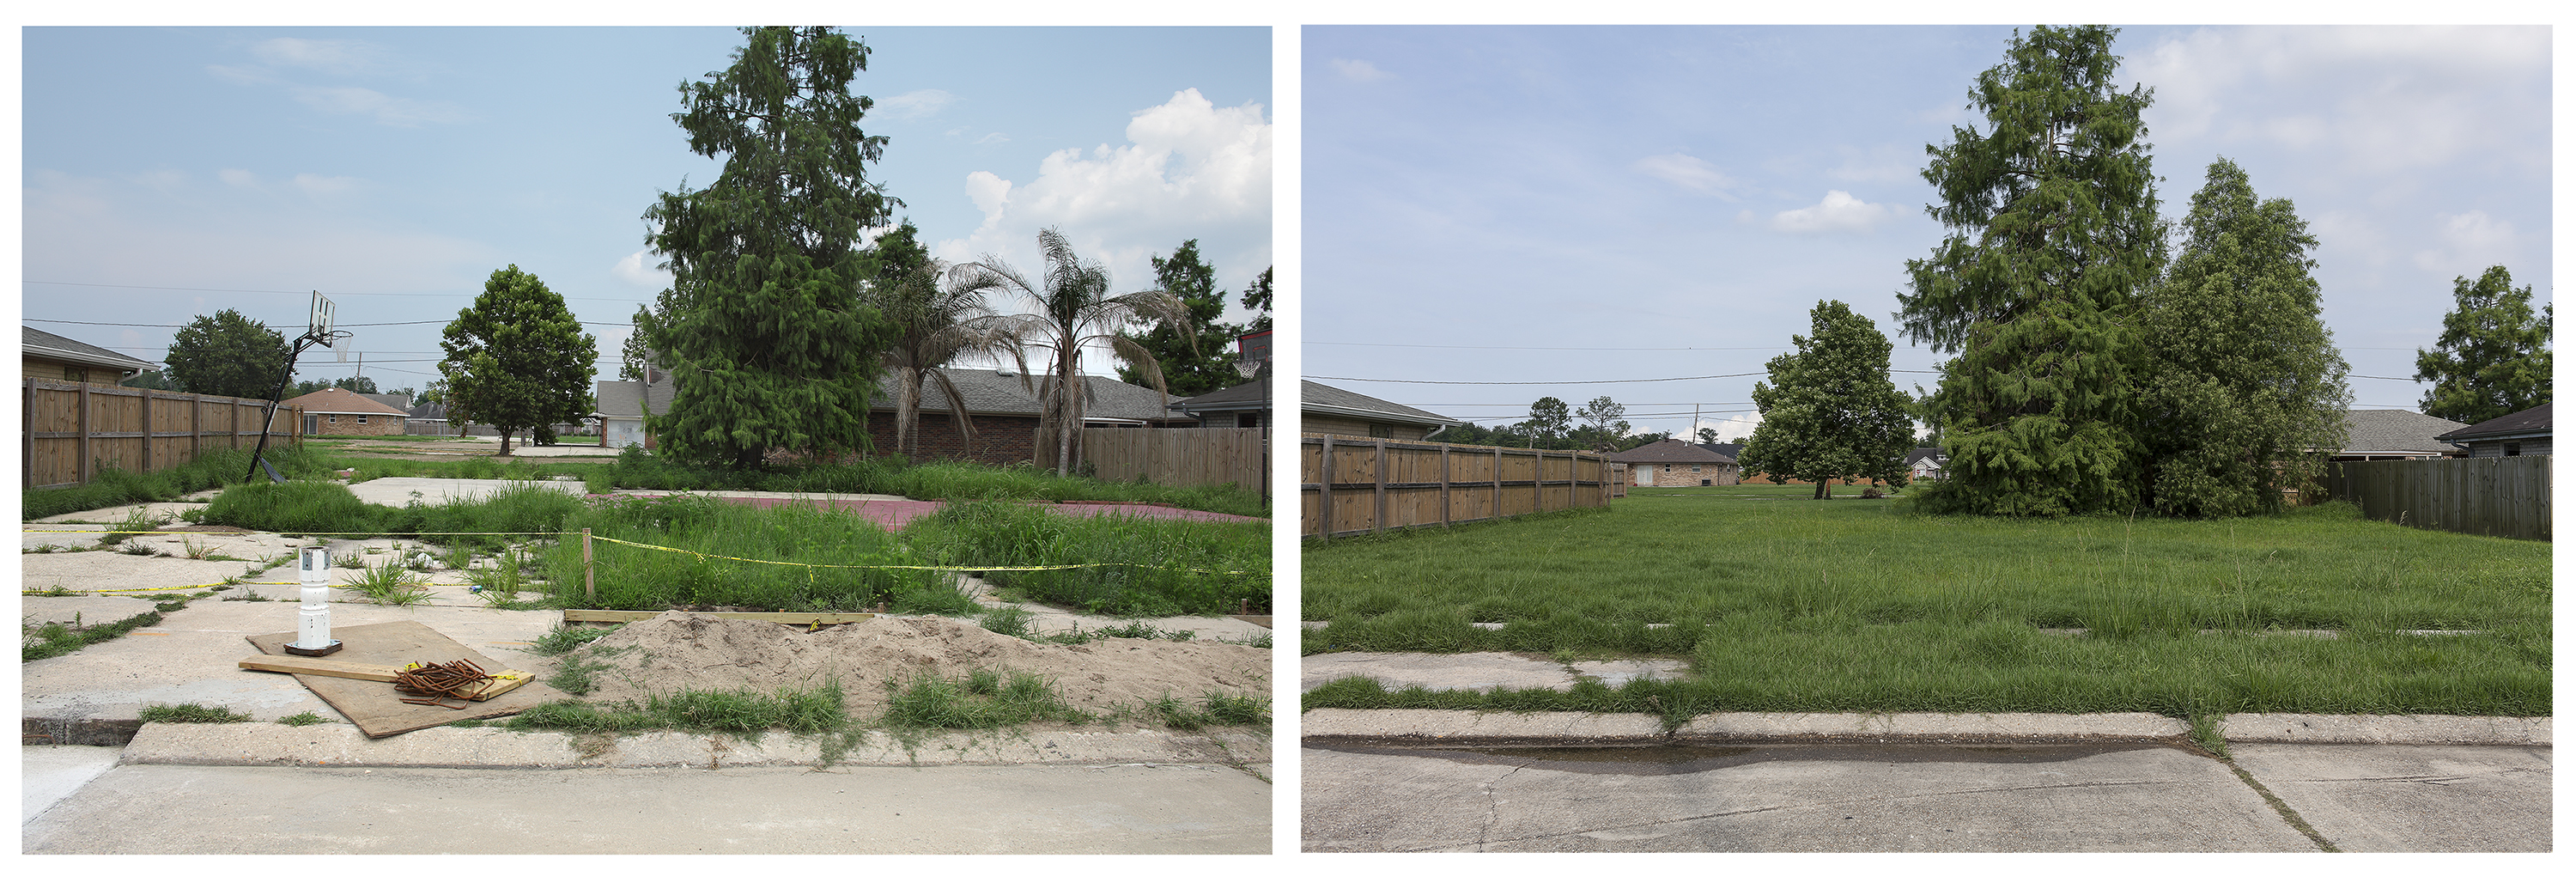 5. Missing BBall Court Blanchard Chalmette Diptych web site